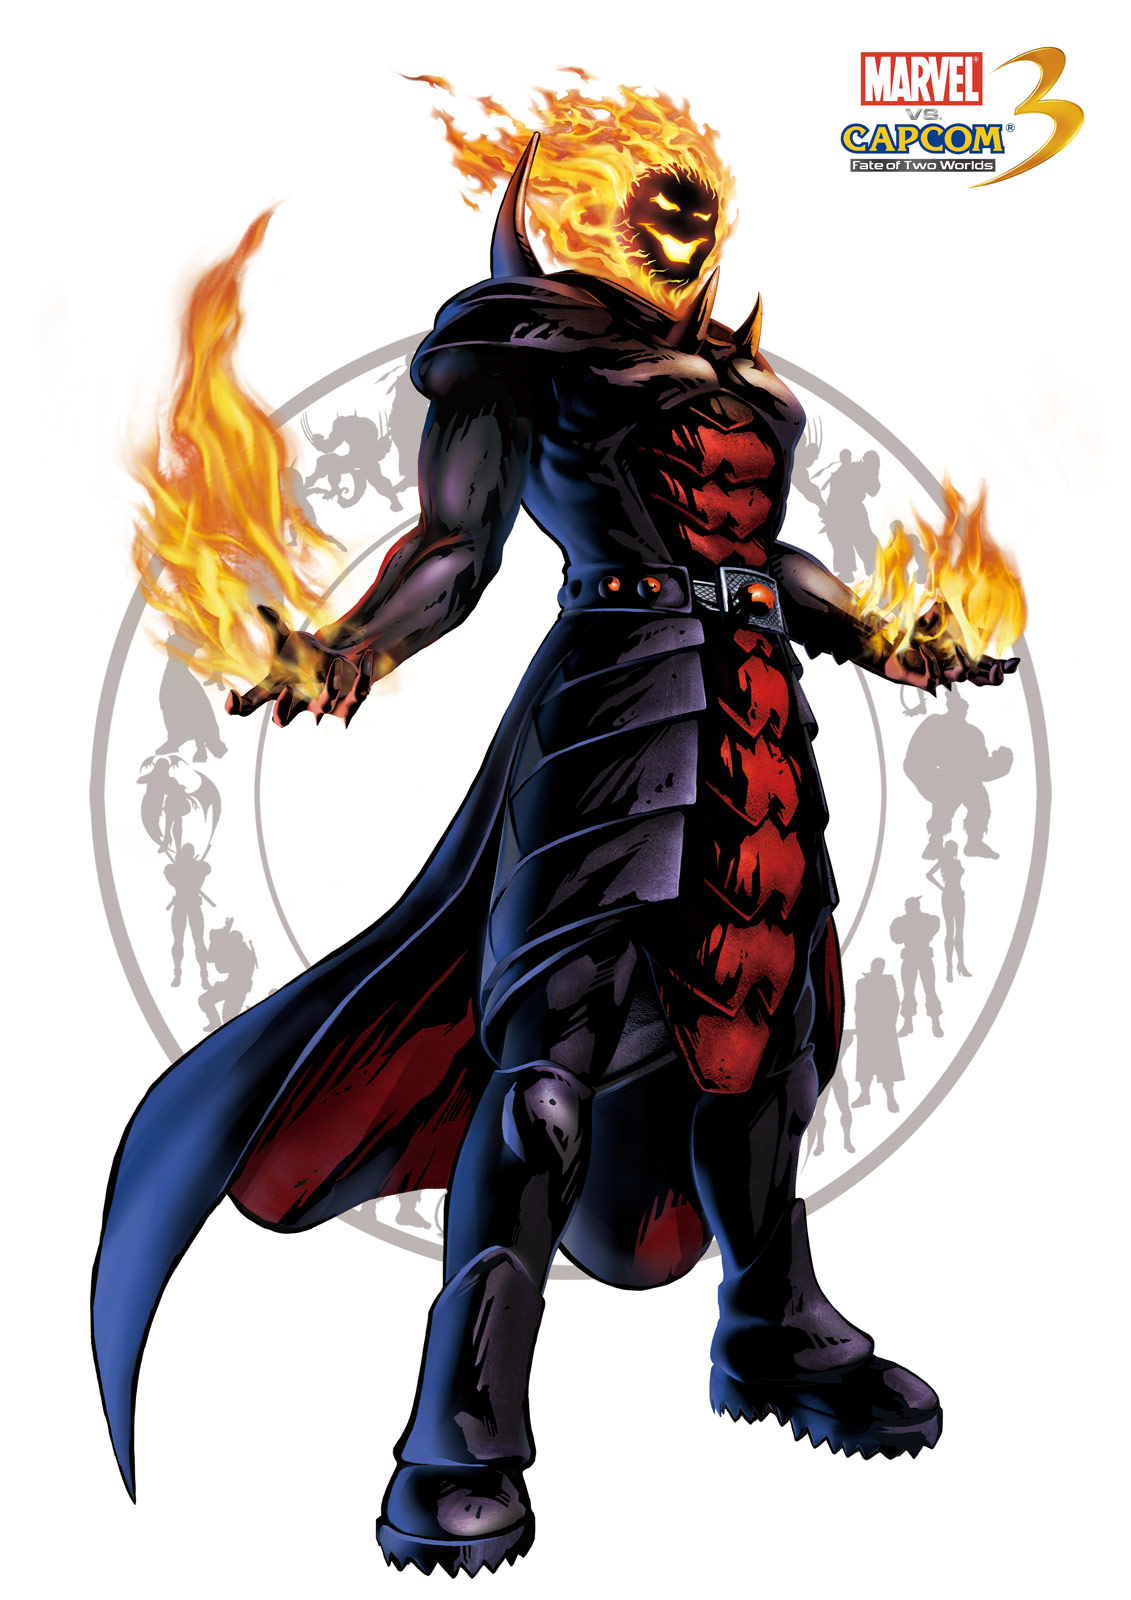 Dormammu artwork for Marvel vs. Capcom 3